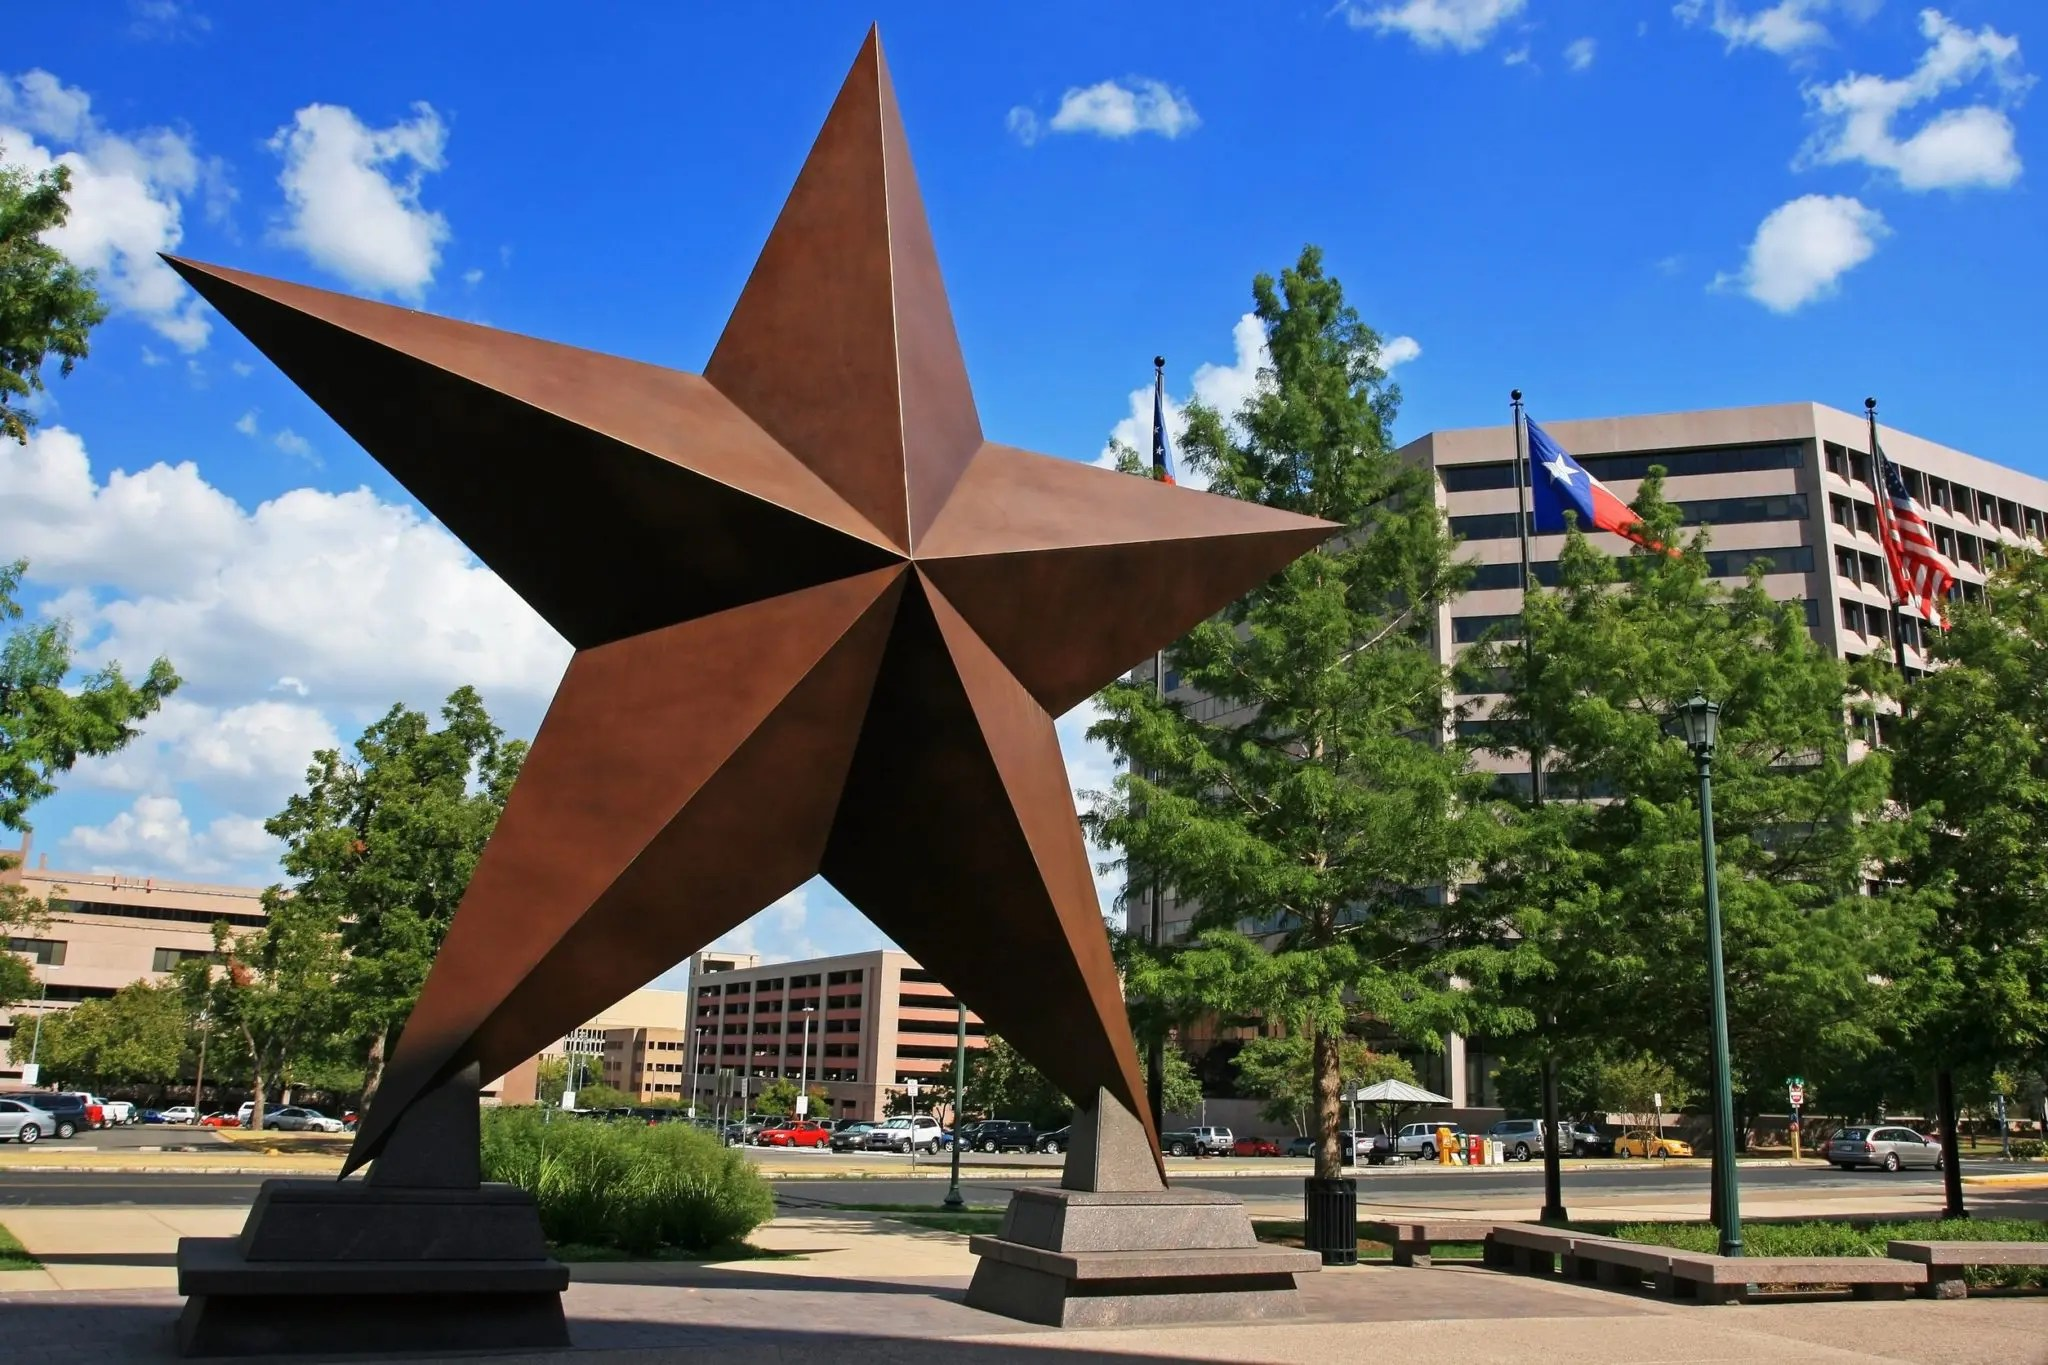 Texas Relinquishment Act Lands: A Case Study for Federal Leasing